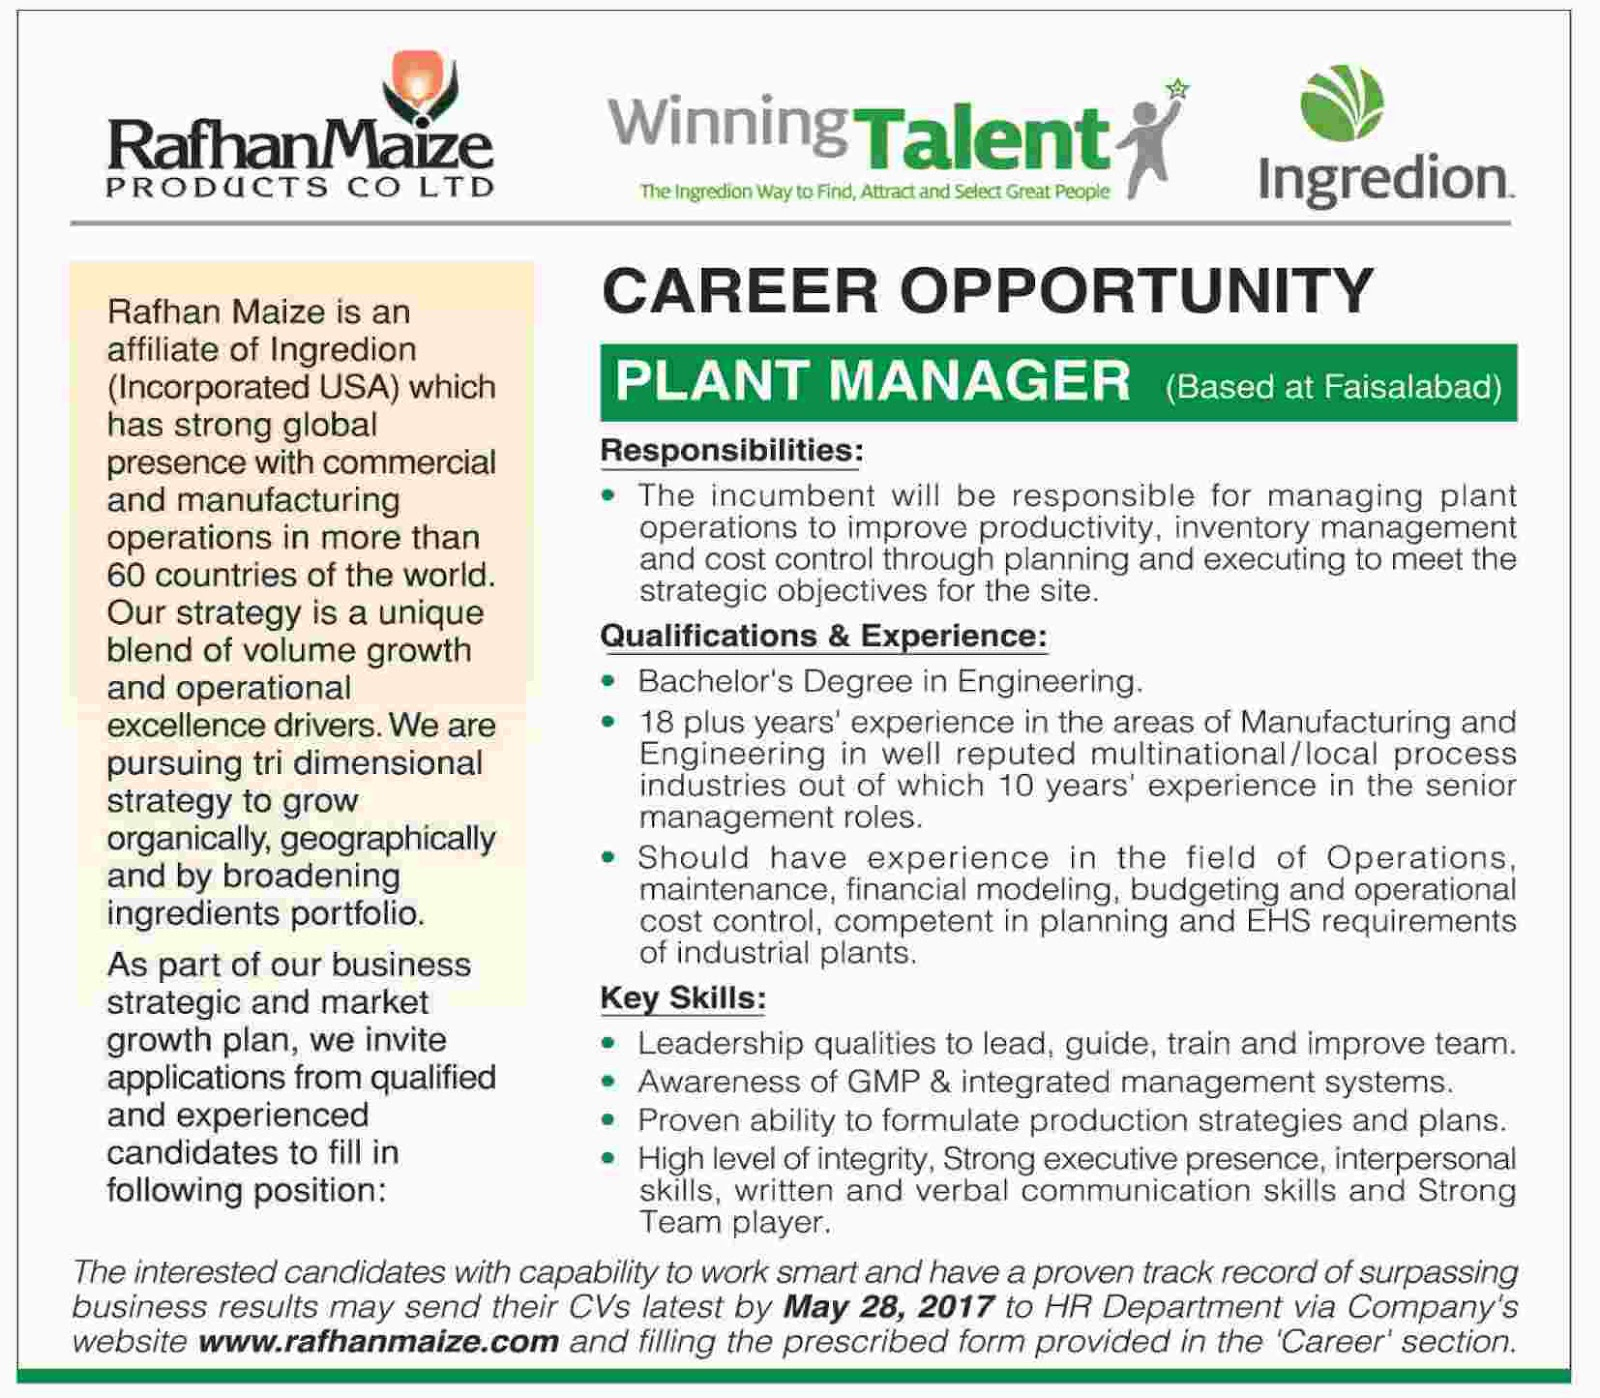 jobs in Rafhan Maize Products Co Limited 15 May 2017